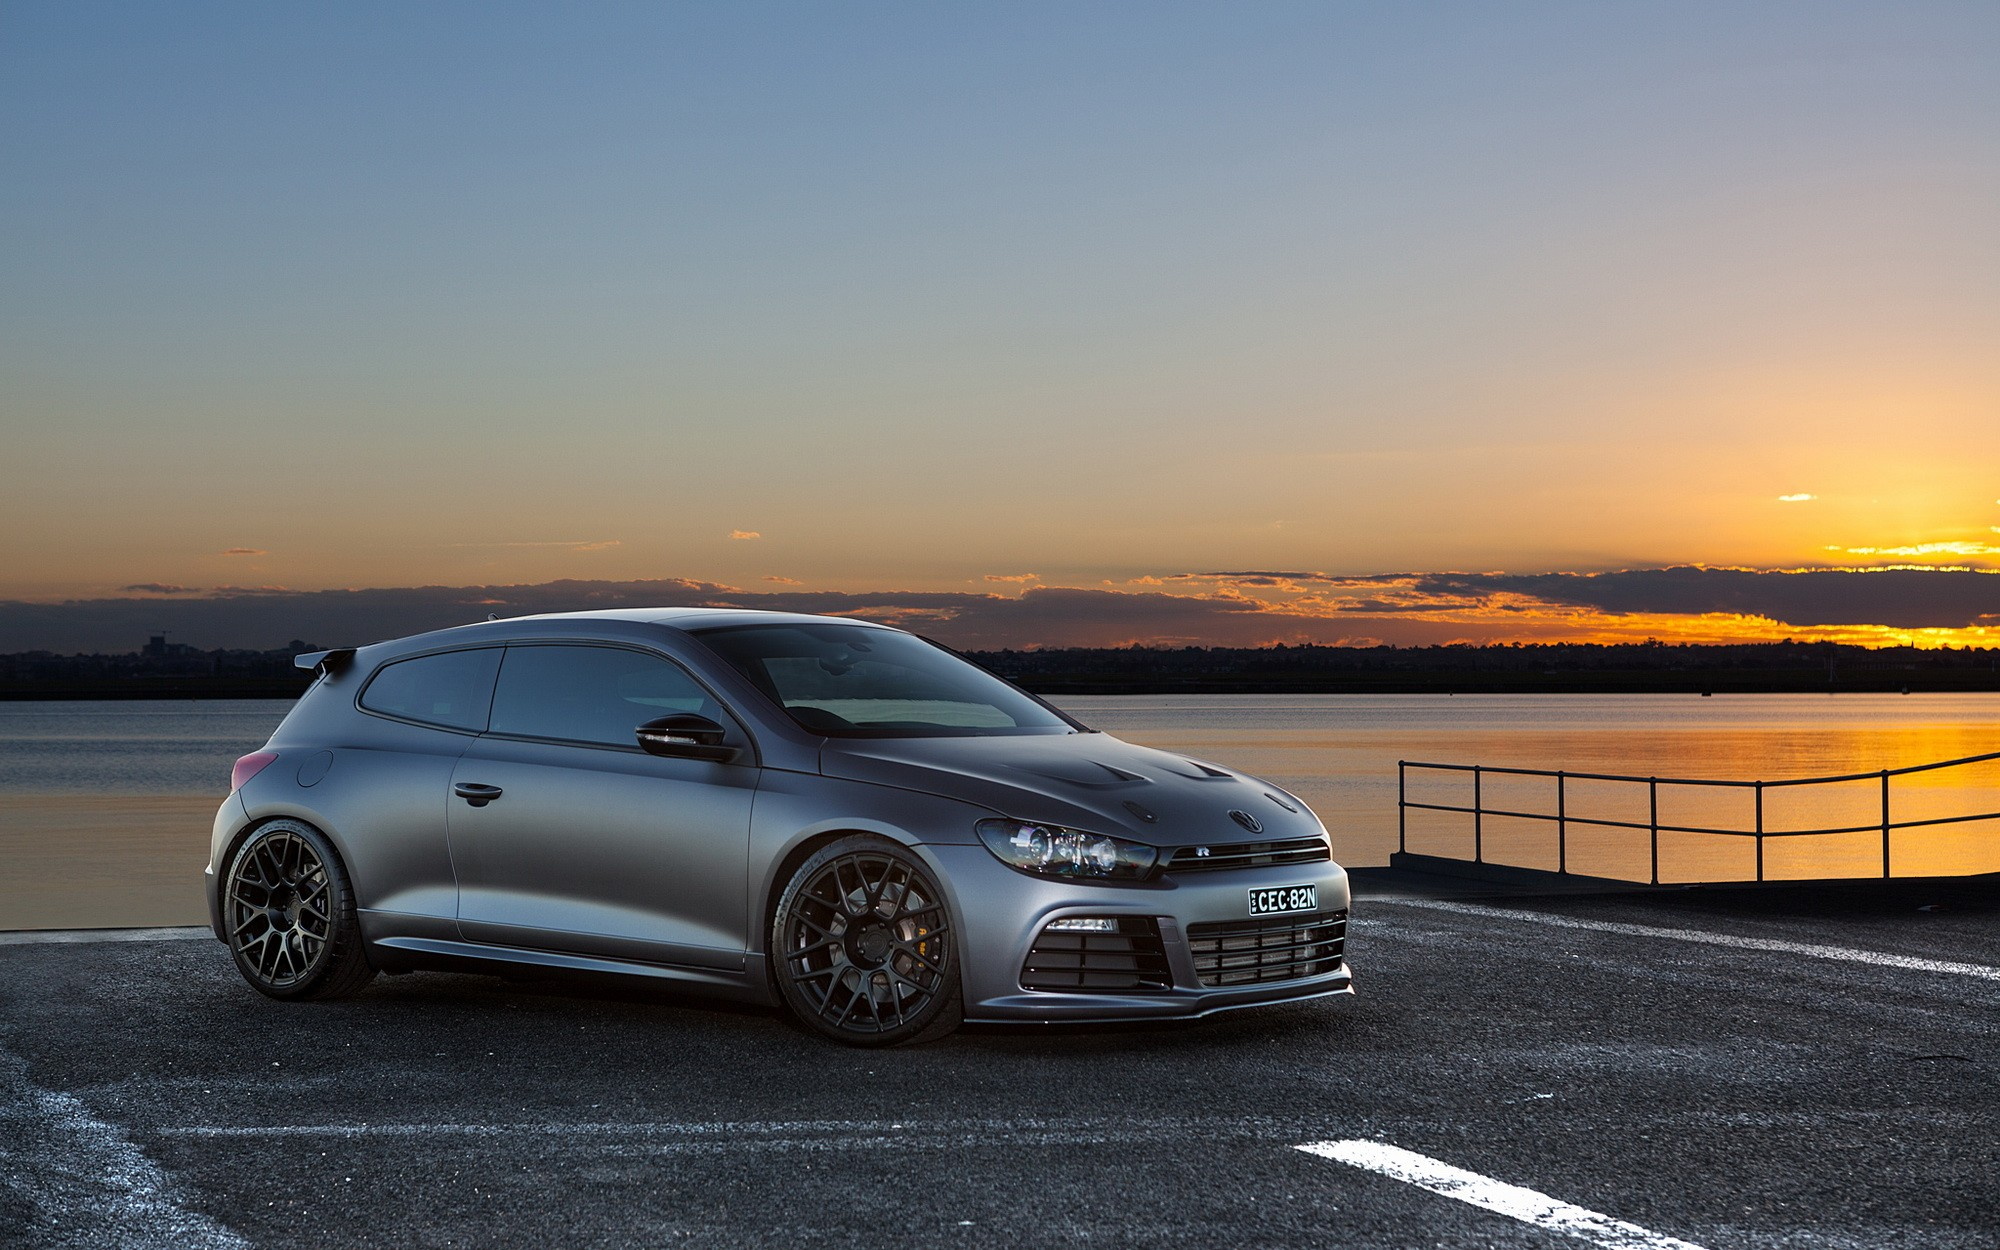 VW Scirocco Wallpaper Volkswagen Cars 61 Wallpapers \u2013 Wallpapers 4k